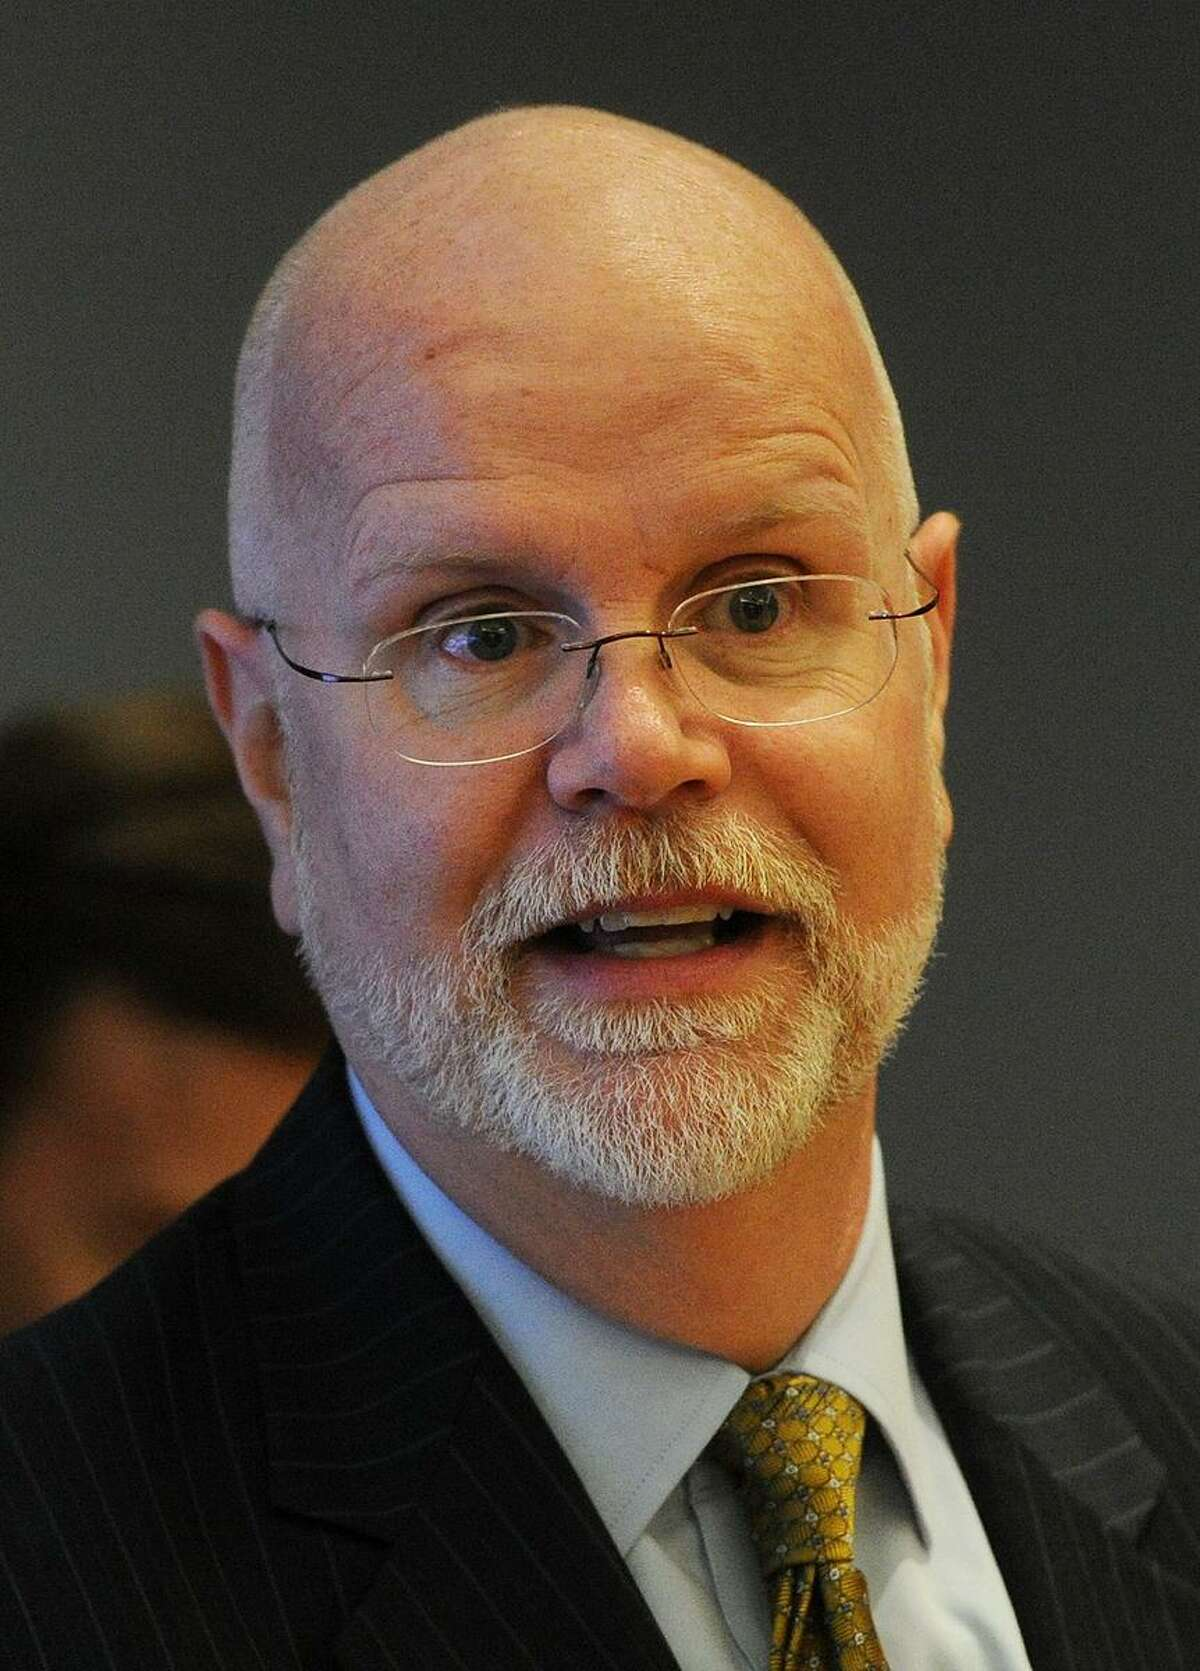 Connecticut State Comptroller Kevin Lembo on Tuesday voted against giving $13 million to a Greenwich hedge fund for expansion plans.